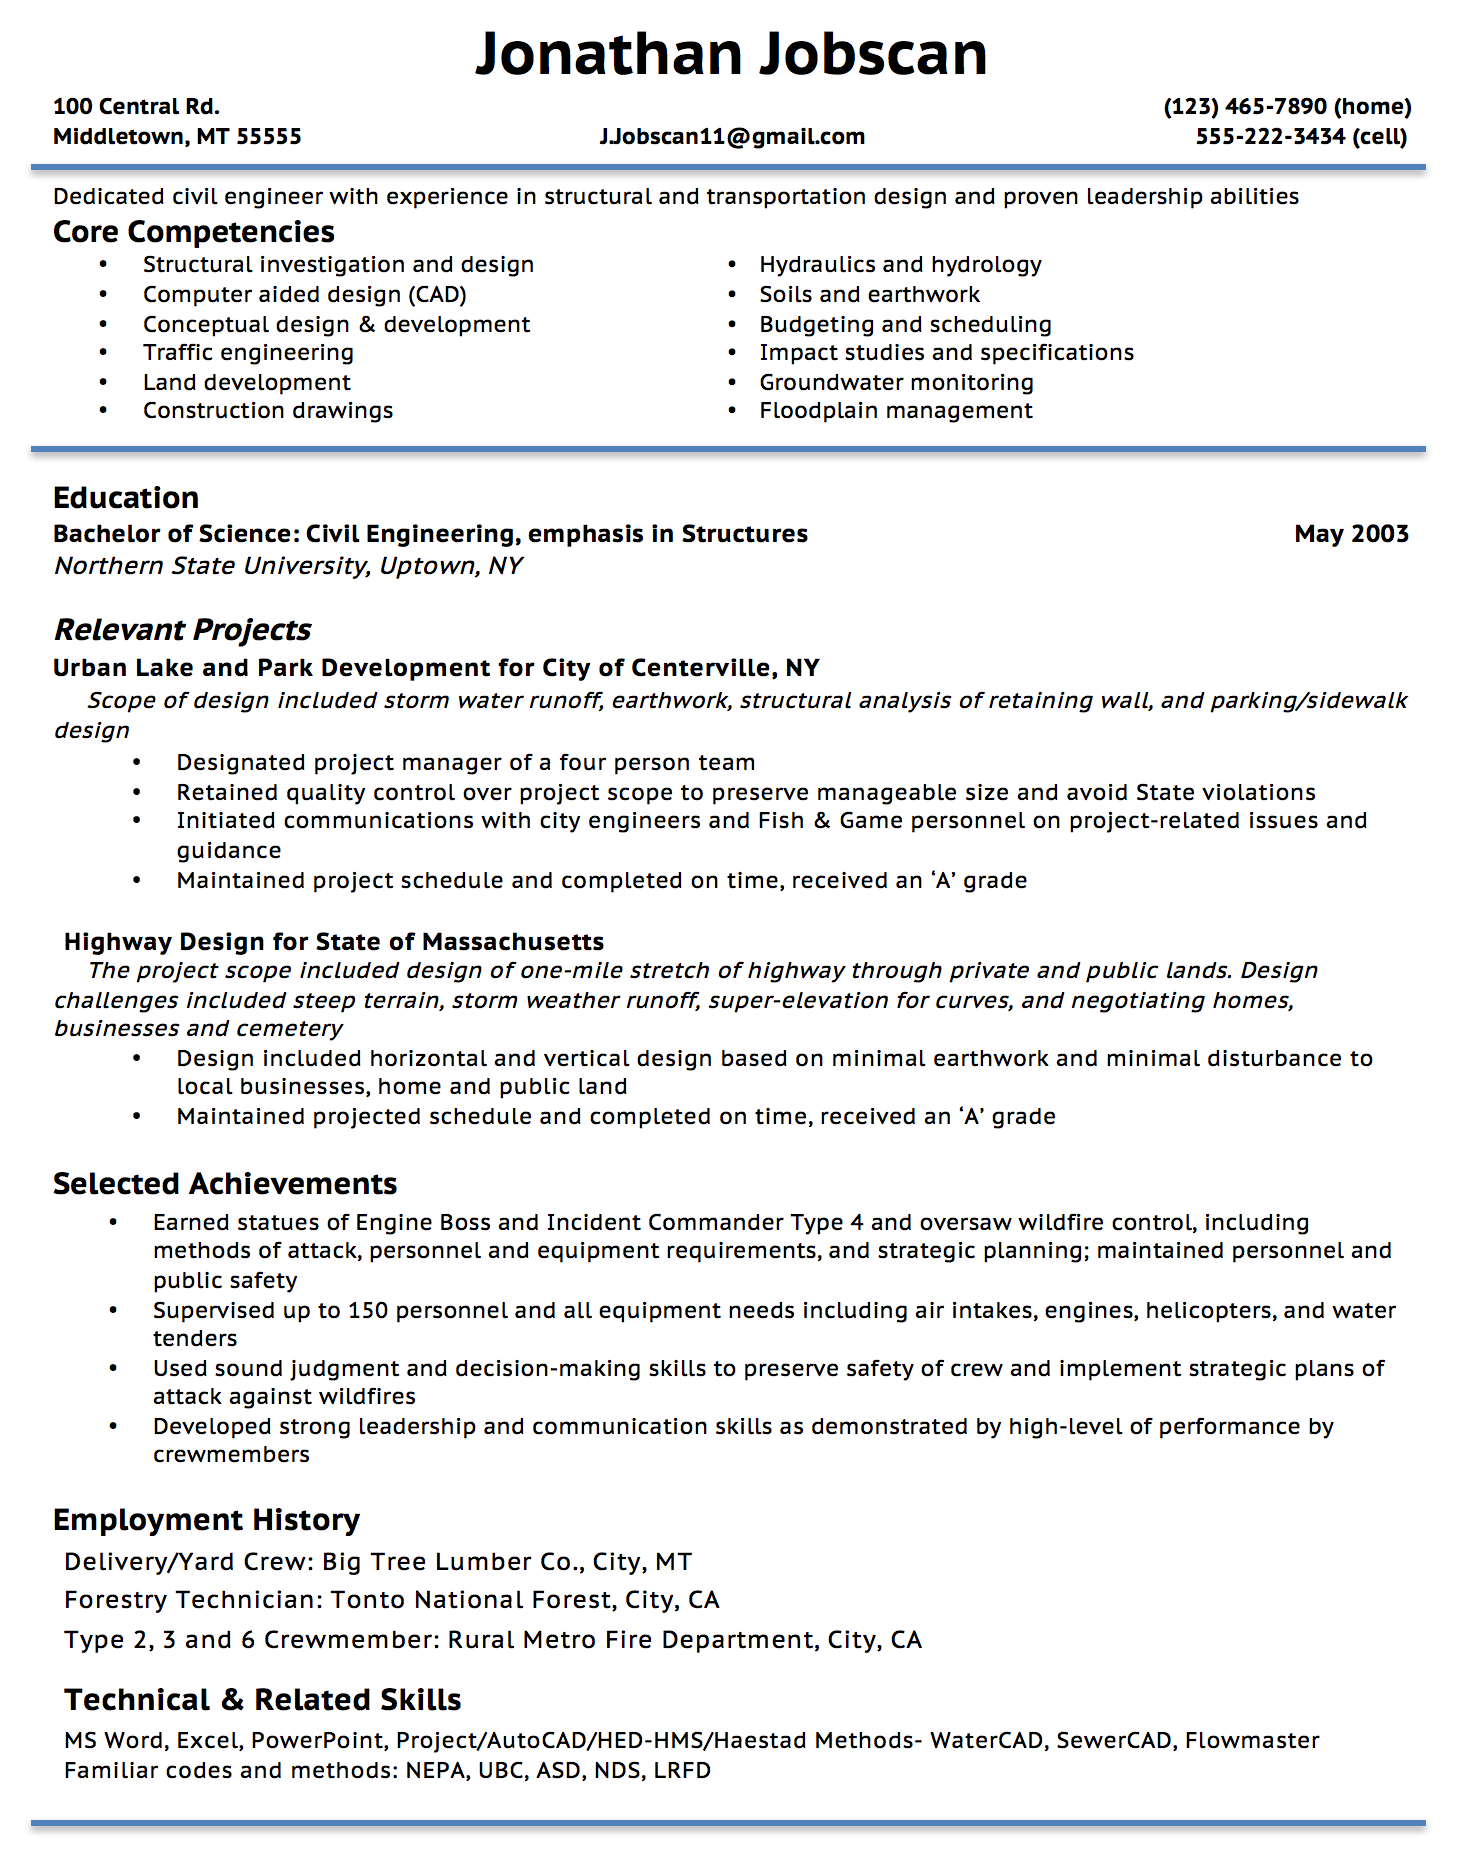 Opposenewapstandardsus  Scenic Resume Writing Guide  Jobscan With Likable Example Of A Functional Resume Format With Agreeable Resume Resources Also Resume Temp In Addition Usa Jobs Resume Format And Internship On Resume As Well As Business Intelligence Resume Additionally Project Management Resumes From Jobscanco With Opposenewapstandardsus  Likable Resume Writing Guide  Jobscan With Agreeable Example Of A Functional Resume Format And Scenic Resume Resources Also Resume Temp In Addition Usa Jobs Resume Format From Jobscanco